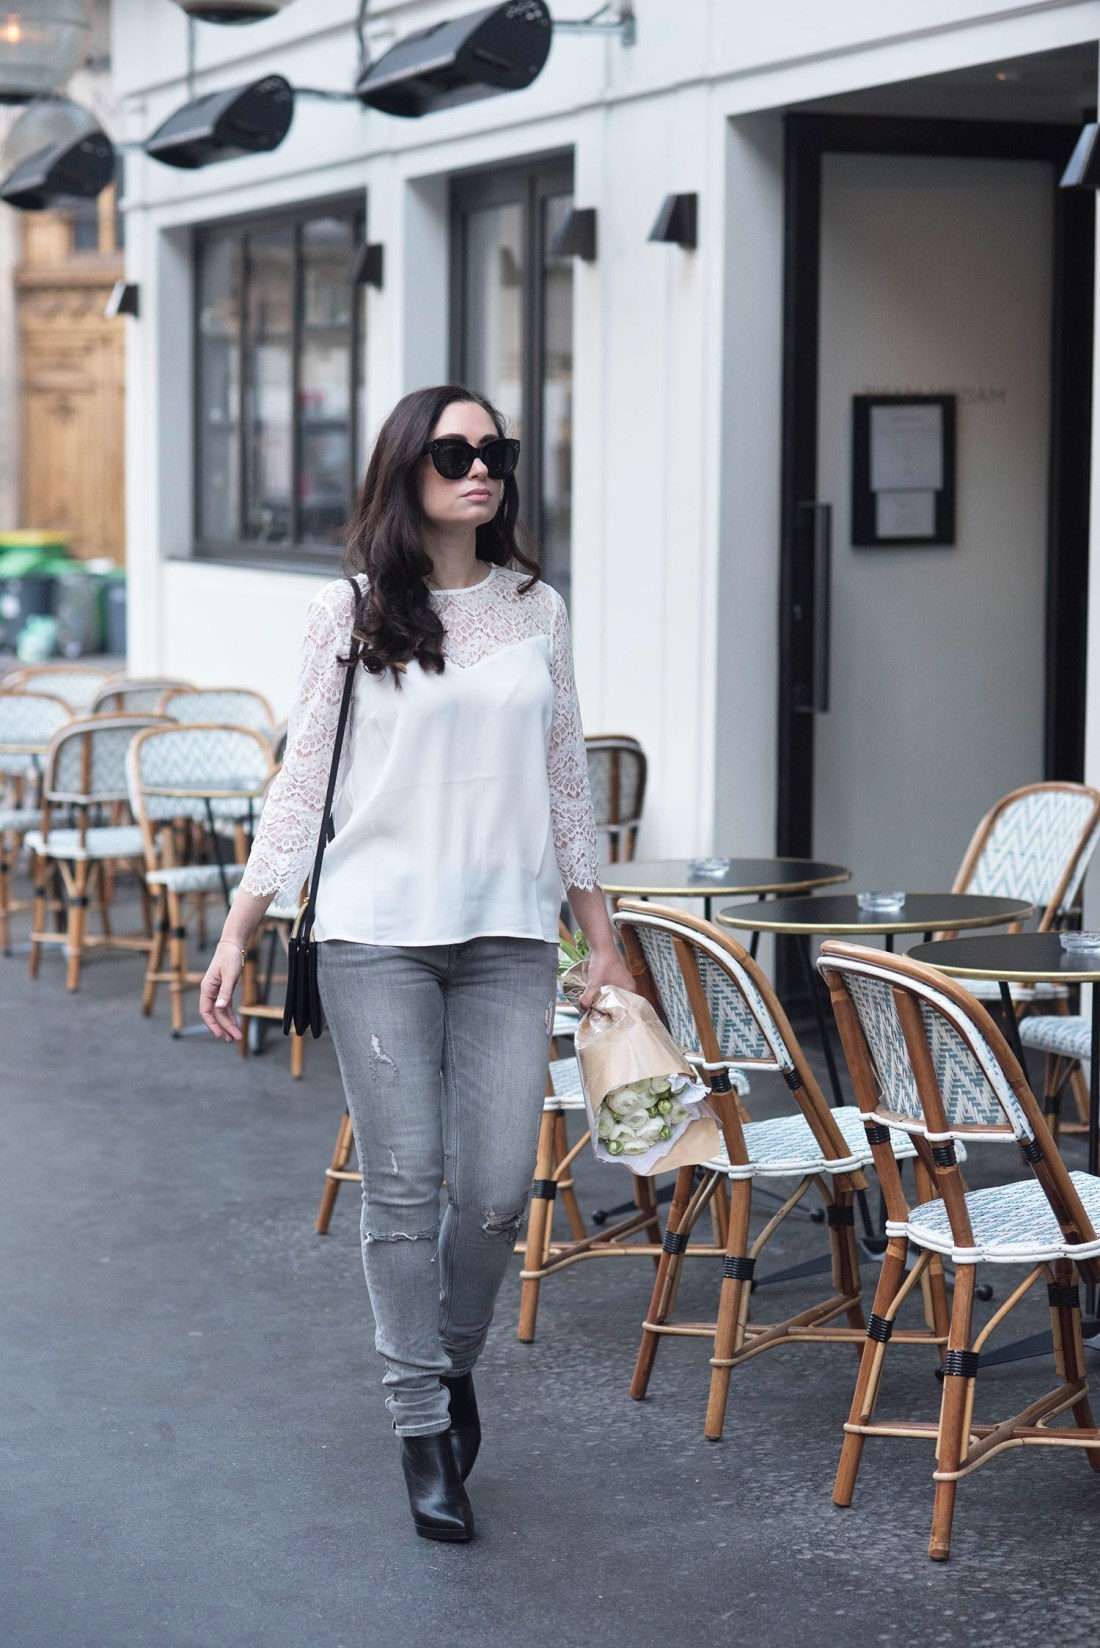 Fashion blogger Cee Fardoe of Coco & Vera walks on the street in Paris carrying a Celine trio bag and wearing Zara grey jeans